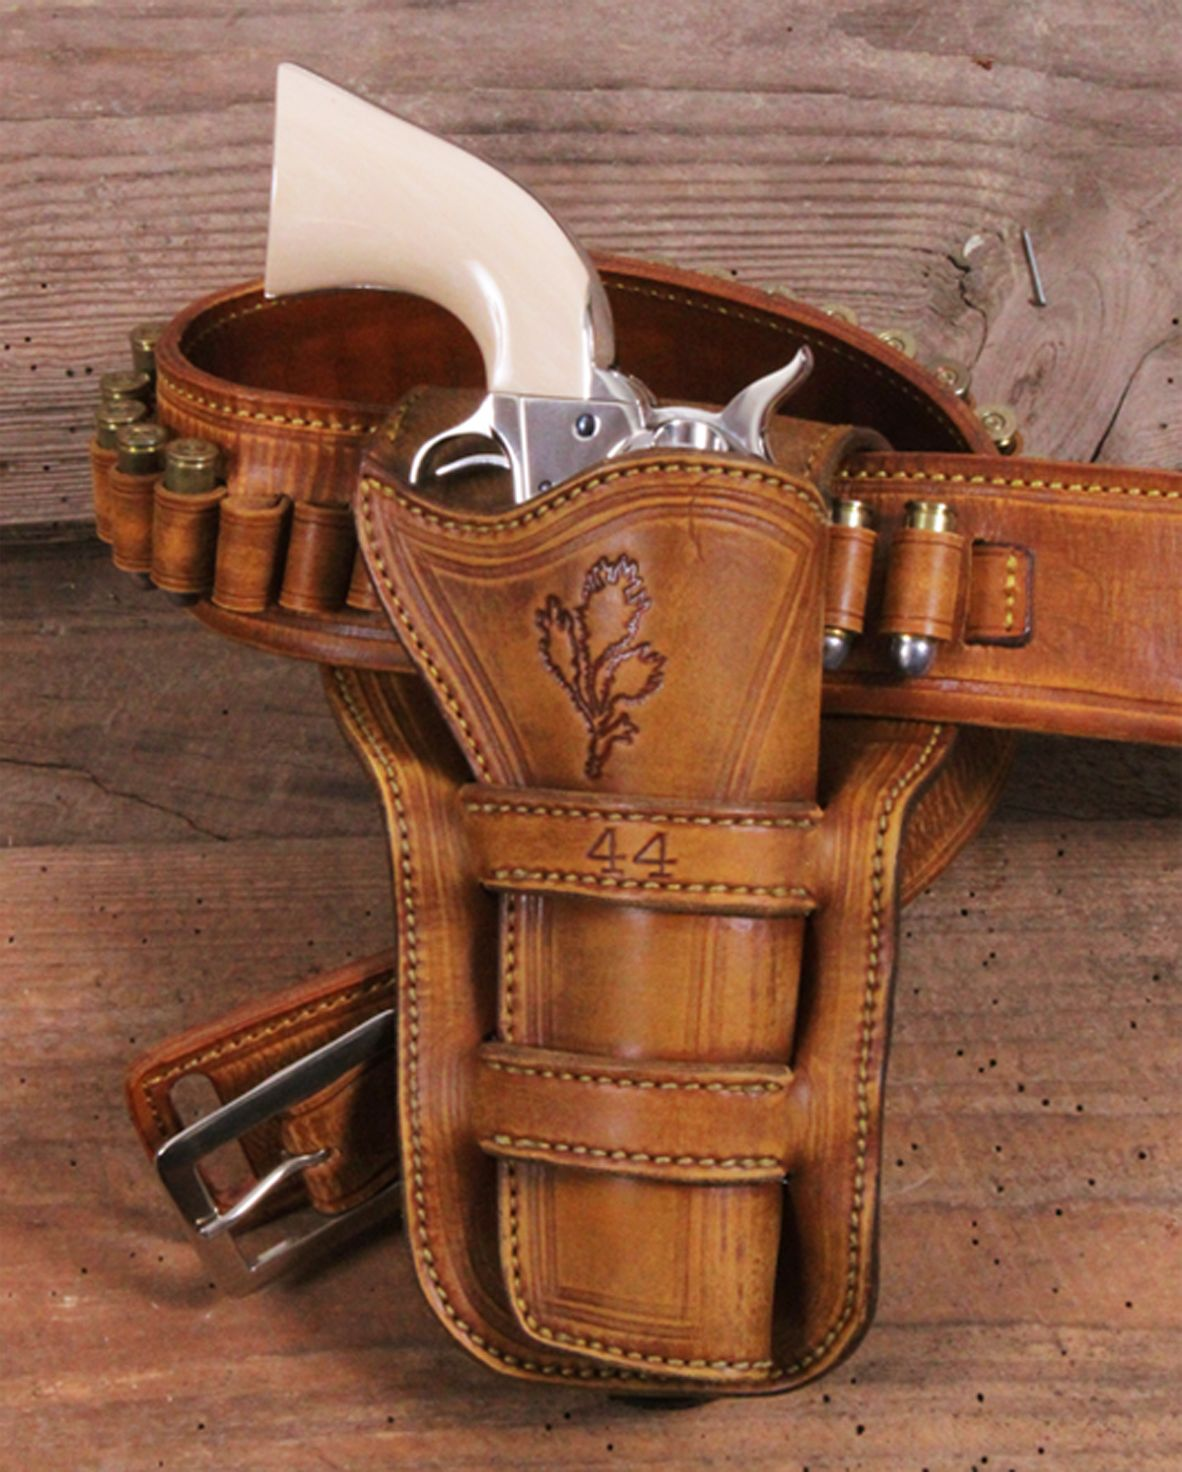 The most beautiful and practical crossdraw holsters on the market